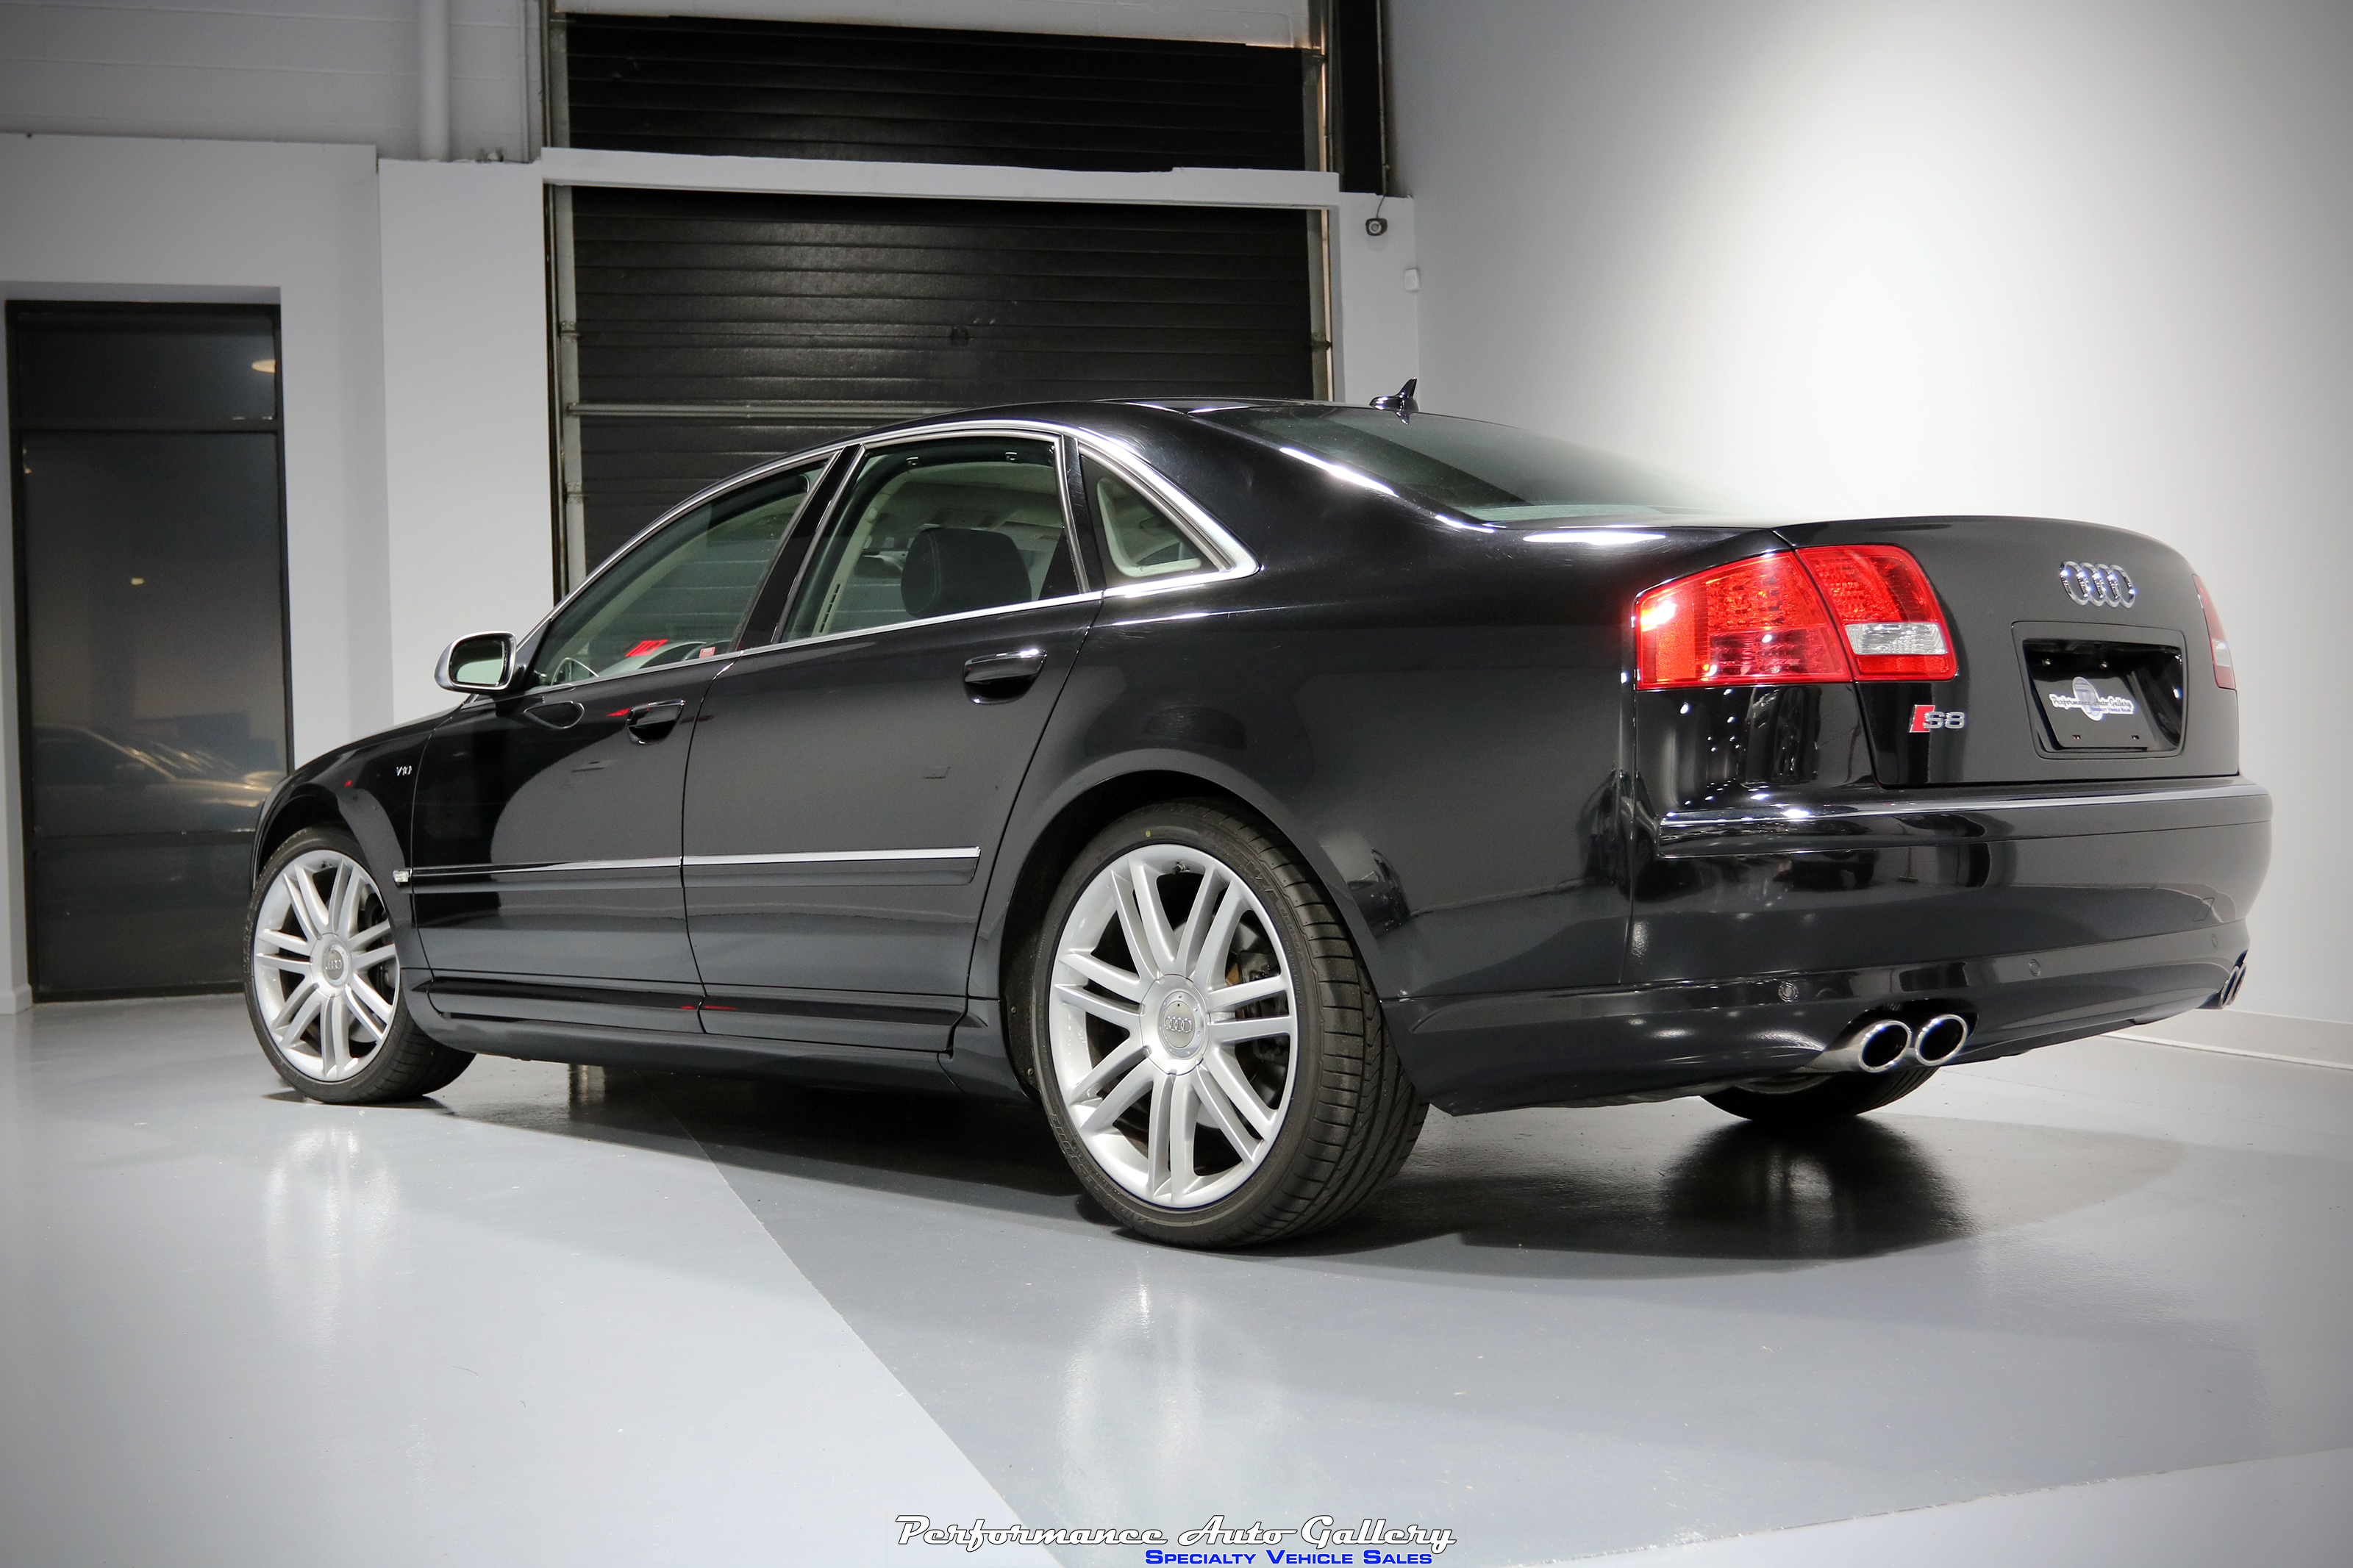 FOR SALE Audi S Quattro - 2007 audi s8